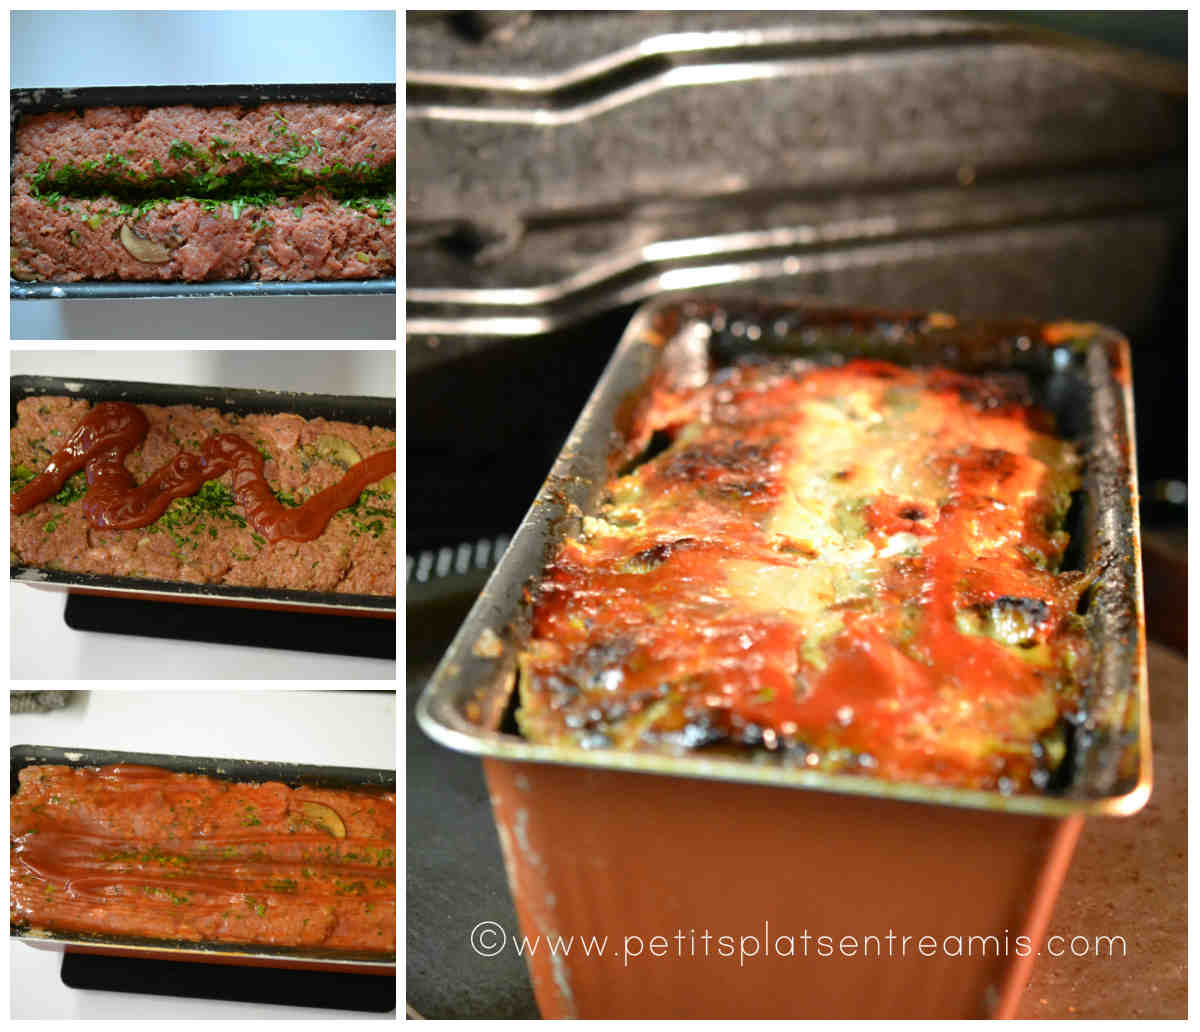 cuisson du meatloaf